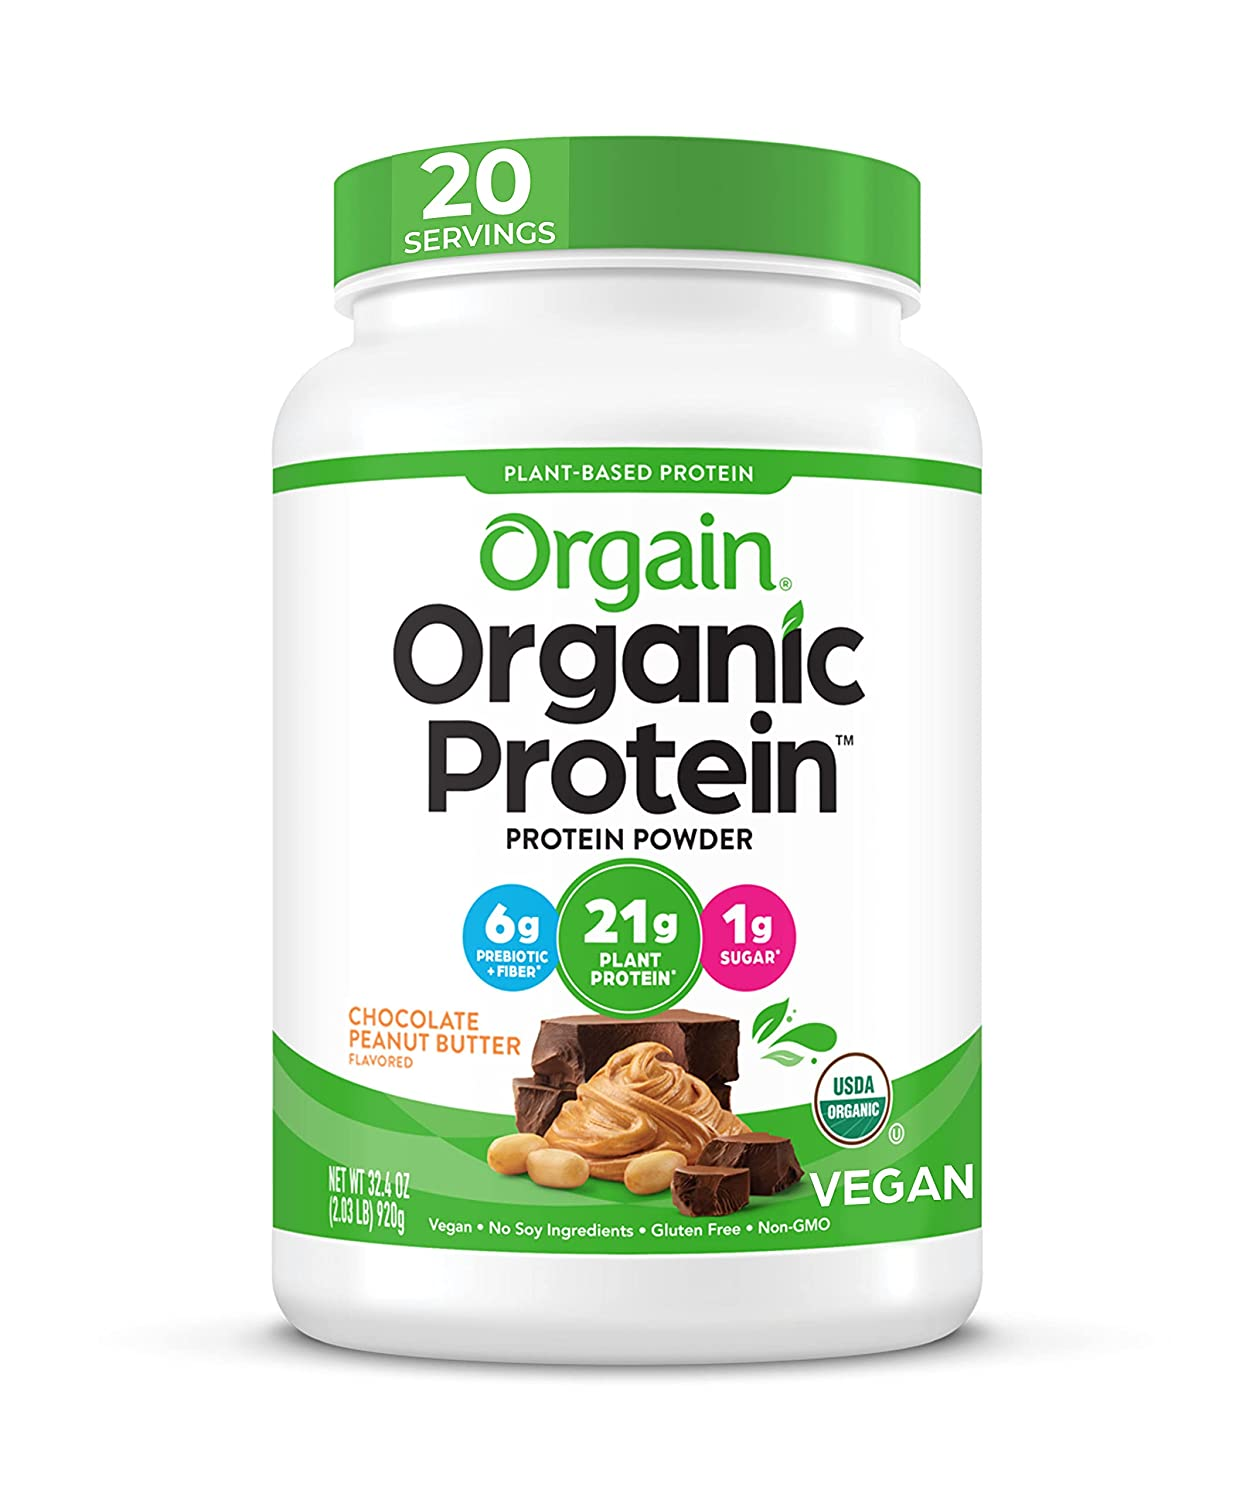 Orgain Organic Plant Based Protein Powder, Chocolate Peanut Butter - Vegan, Low Net Carbs, Non Dairy, Gluten Free, Lactose Free, No Sugar Added, Soy Free, Kosher, 2.03 Pound (Packaging May Vary)